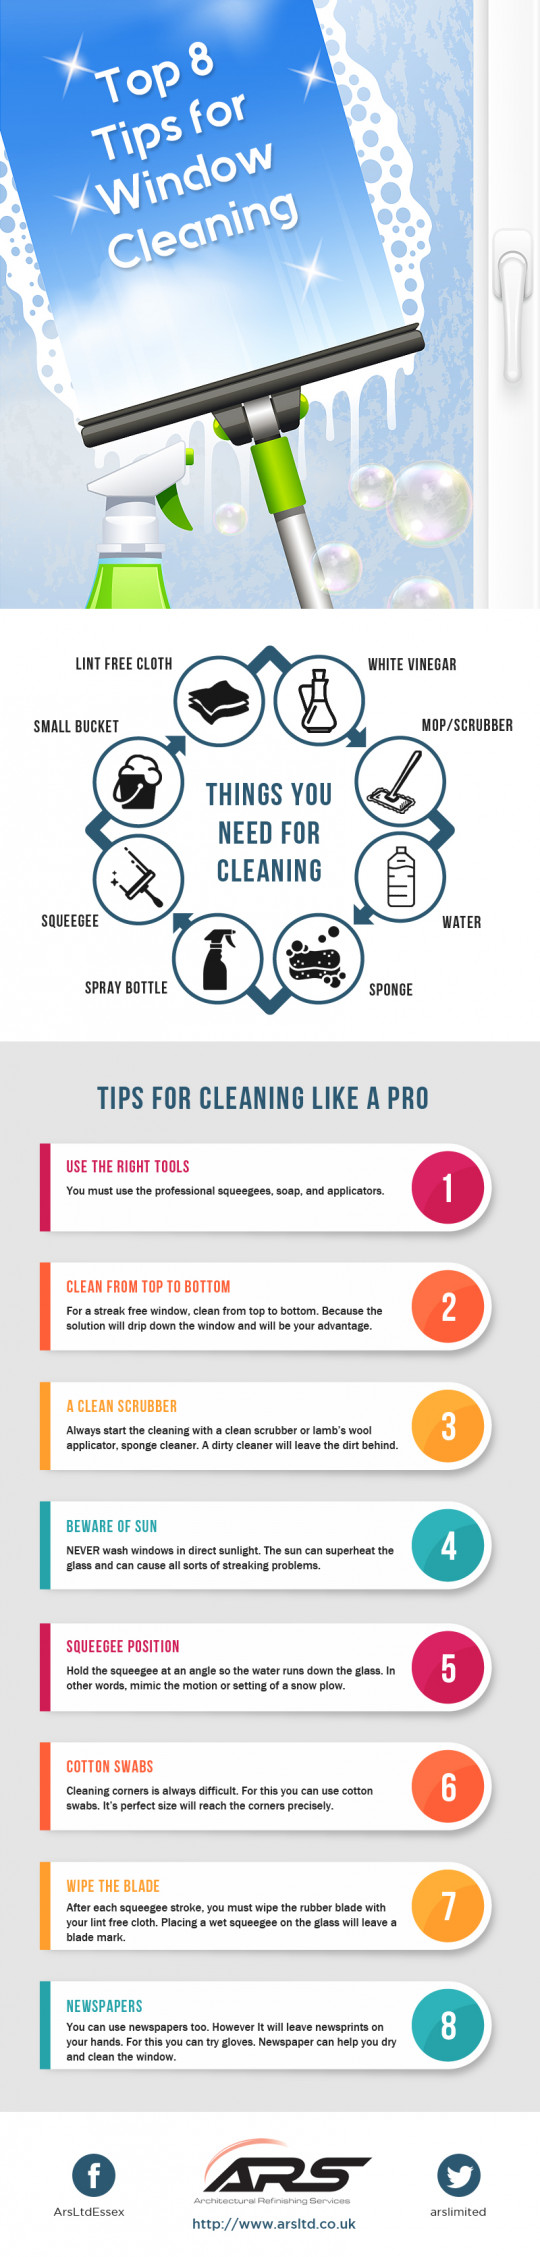 8 Tips for Window Cleaning